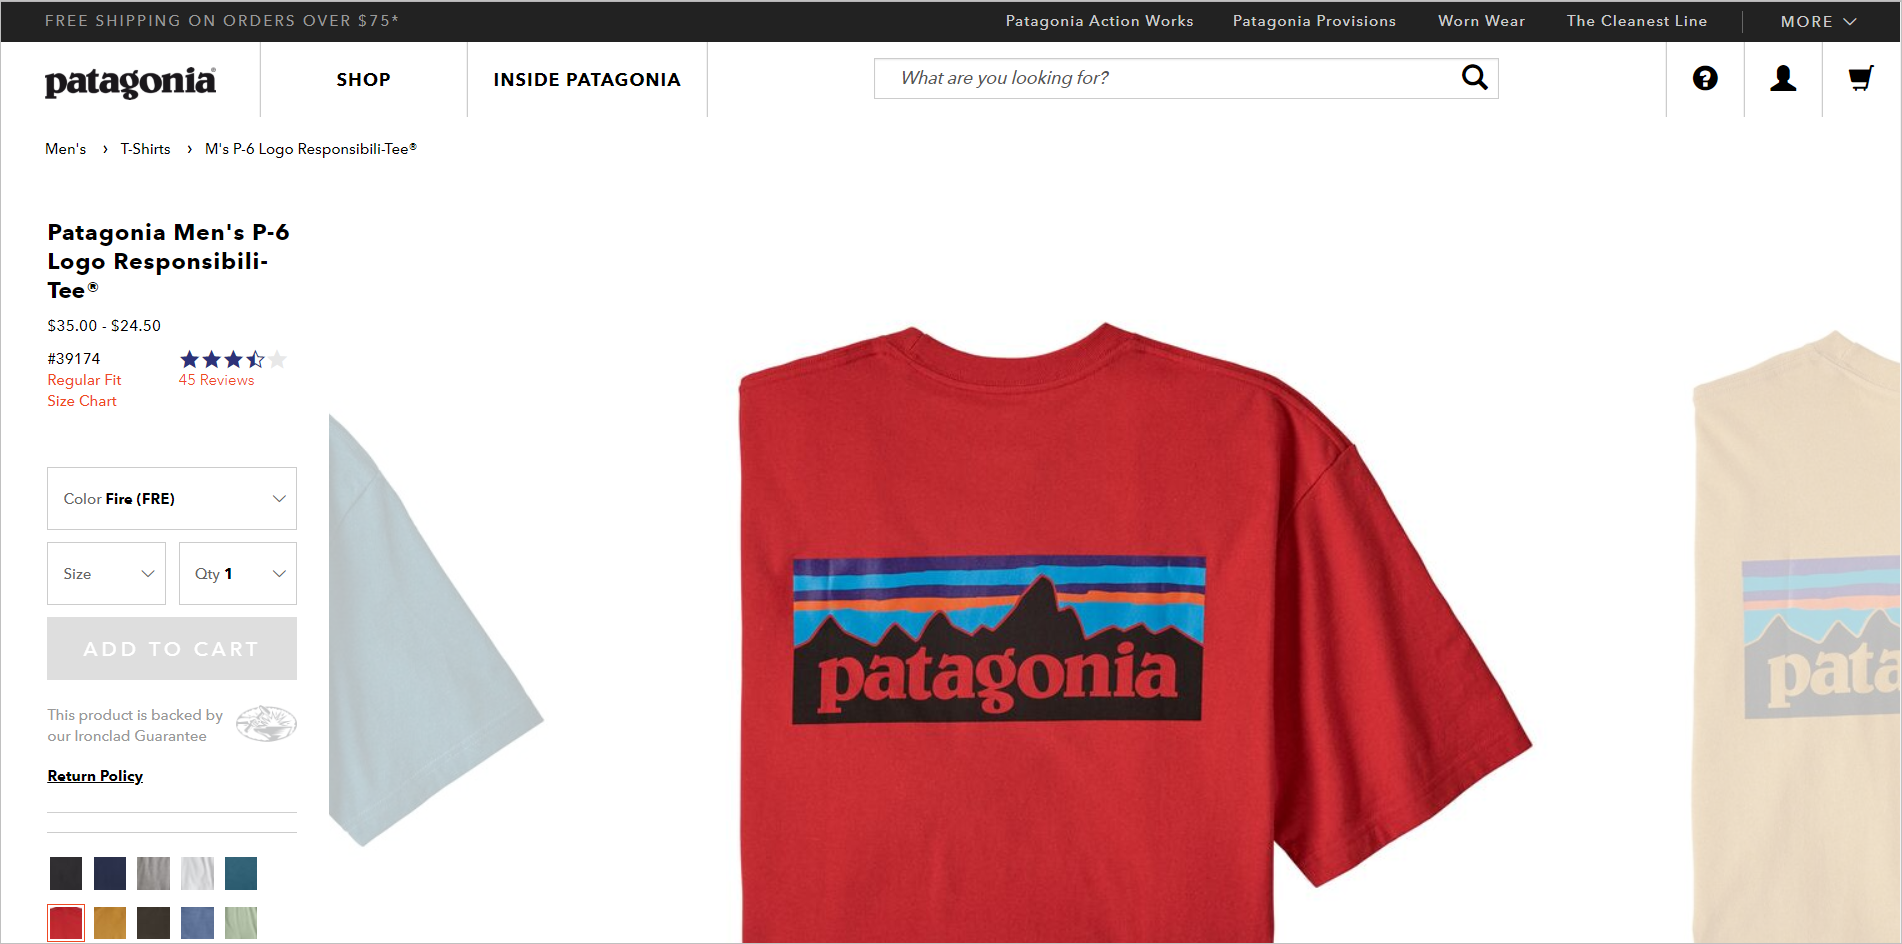 trendy web design pitfalls - deviation from web conventions example - patagonia's product detail page with the action block on the left and the product image on the right